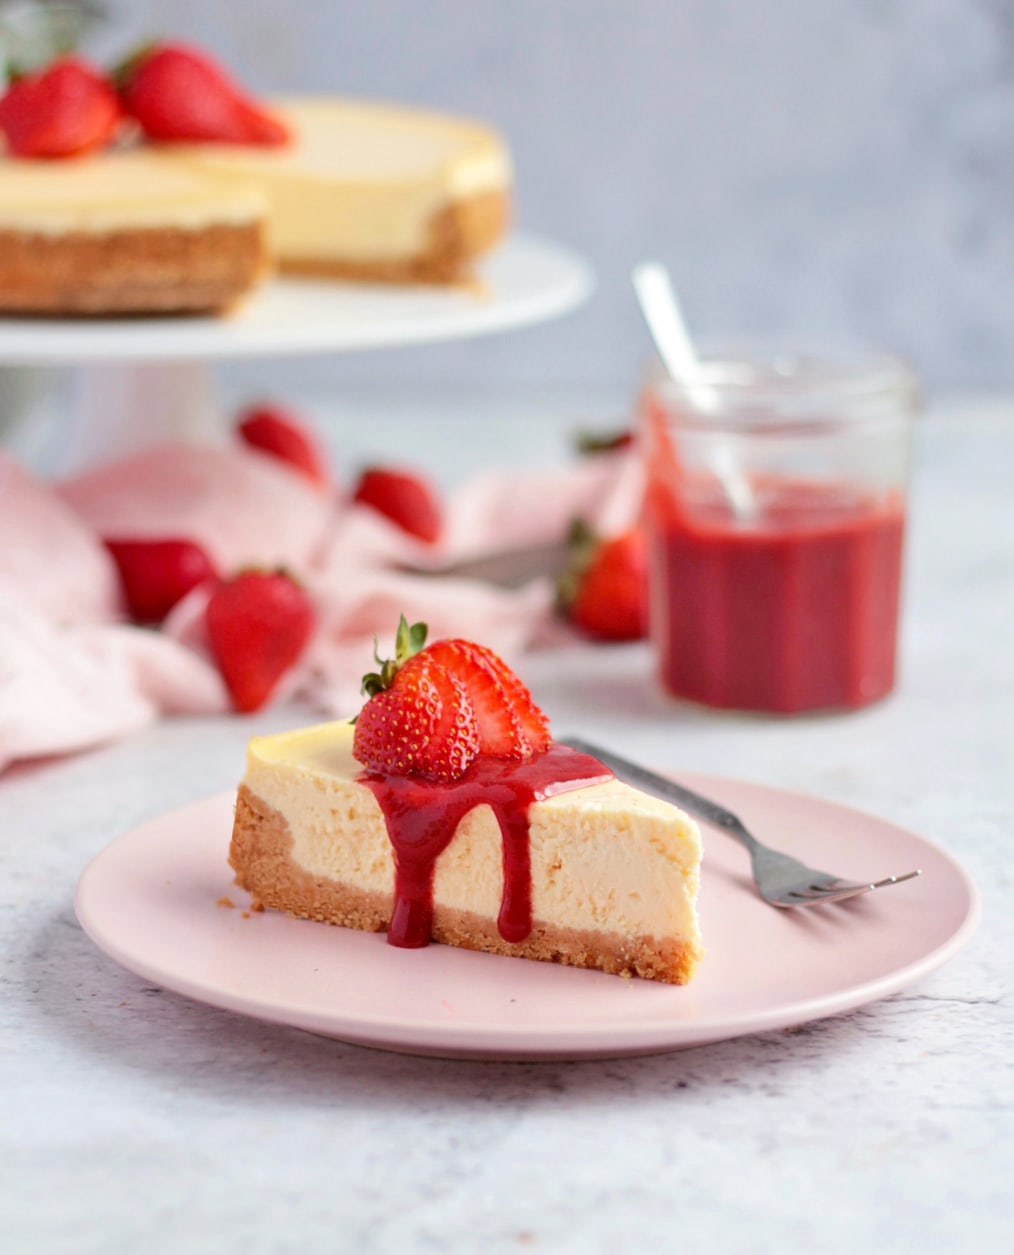 One slice of ricotta cheesecake with strawberry sauce and cheesecake on a cake stand in the background